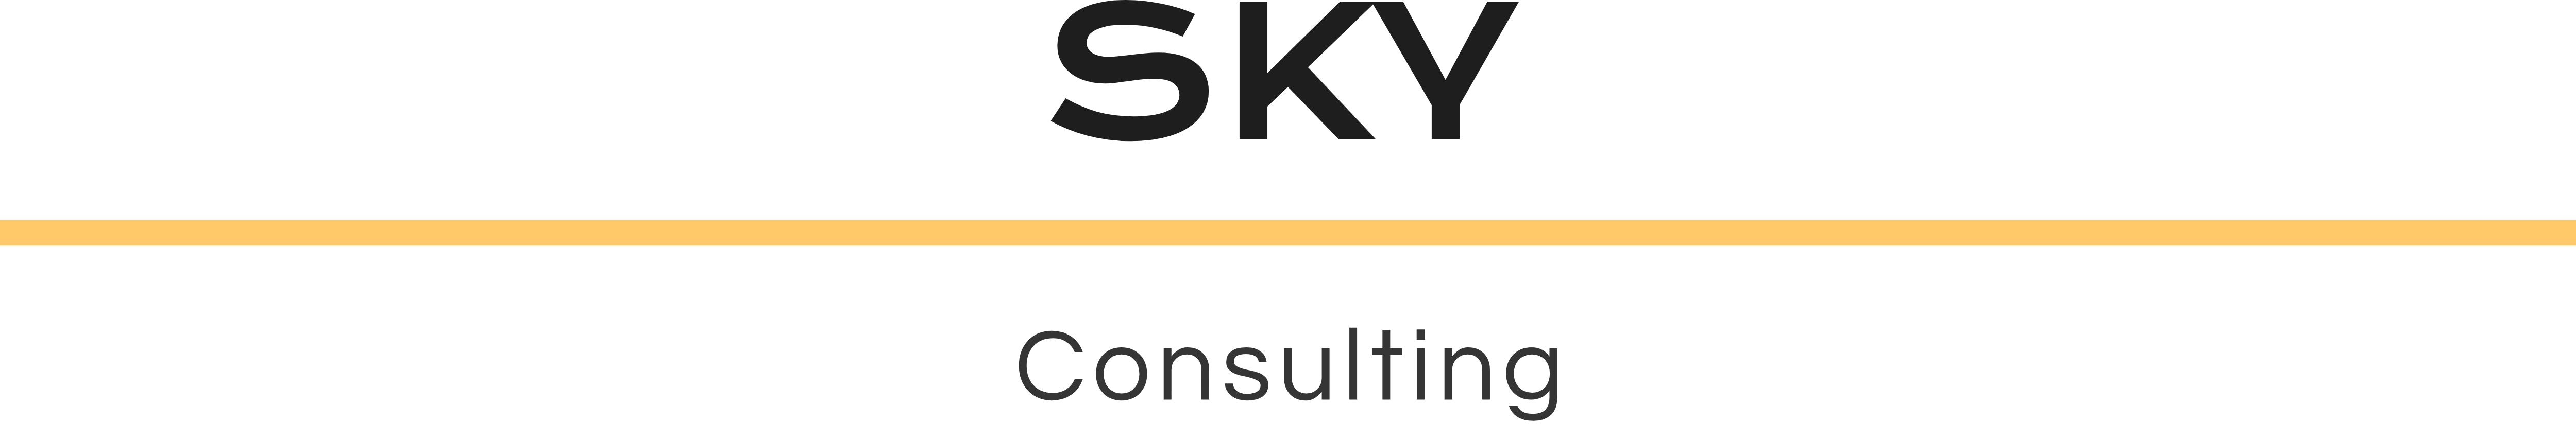 SKY consulting